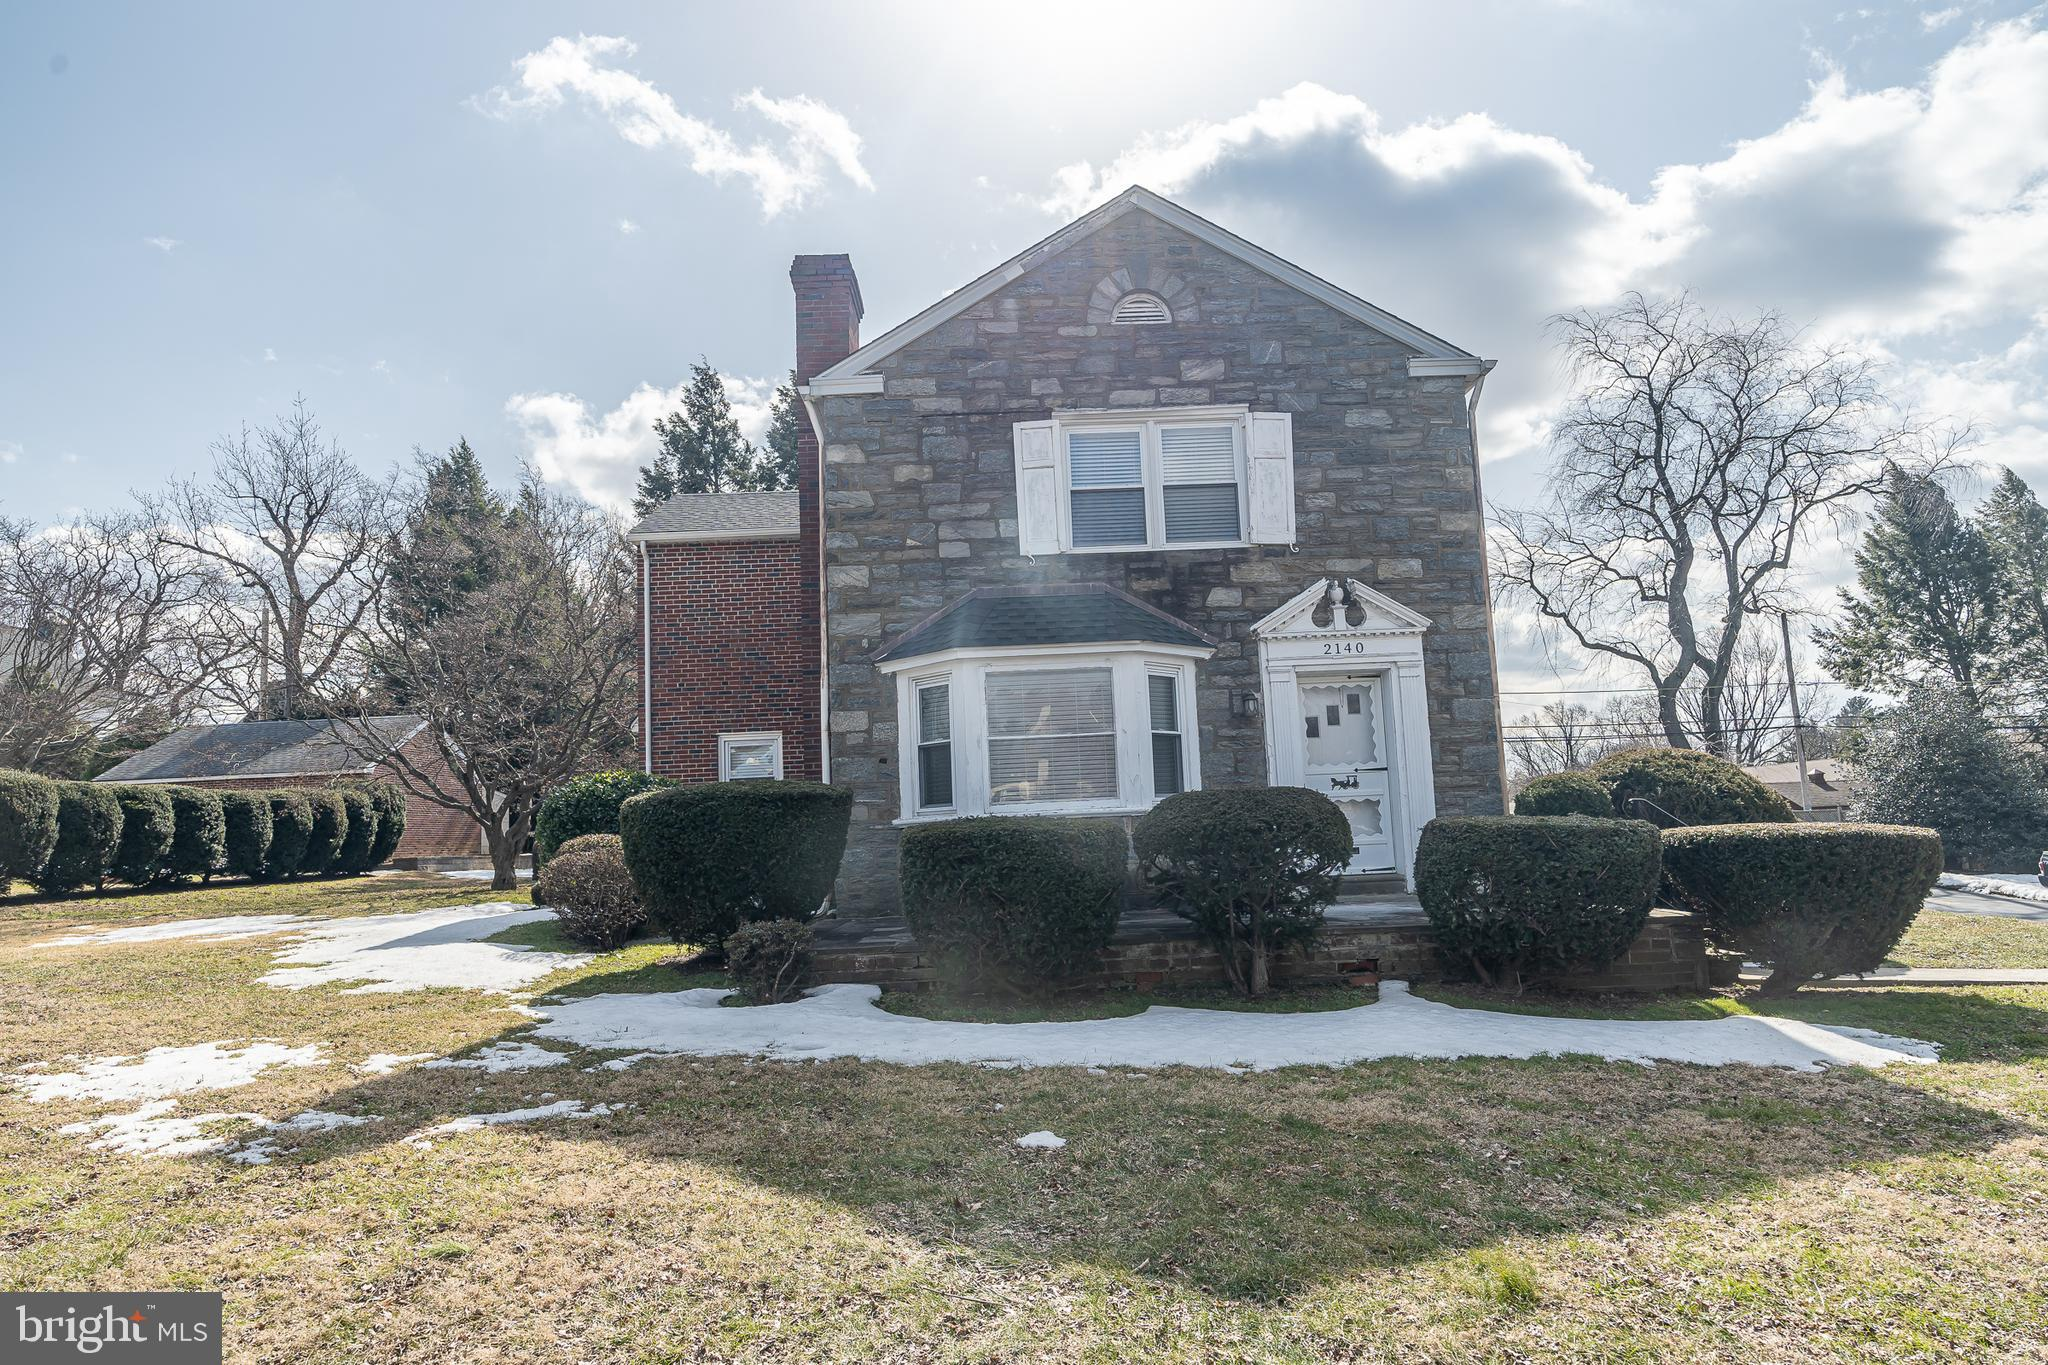 Welcome to 2140 Haverford Road  !  This property is a large stone/ brick colonial  style home and has  been owned by the same family since it was built in 1947.  At almost 2300 square feet  you will see that all of the rooms are a good size. And the outdoor spaces are large as well.  There is a 2 car detached garage and all situated in the Wynnewood section  of Haverford Township. The living room  is bright with nice windows and a fireplace  and opens to large dining room.  There is an  eat-in kitchen and a first floor den. The second floor consists of a master bedroom with bathroom ,  3 additional bedrooms and a hall bathroom.  The house has hot water heating and central air.  The basement has lots of potential as it was used in the past as a recreation area with an office and work area and outside exit .  The house is easy to show come and make it yours !